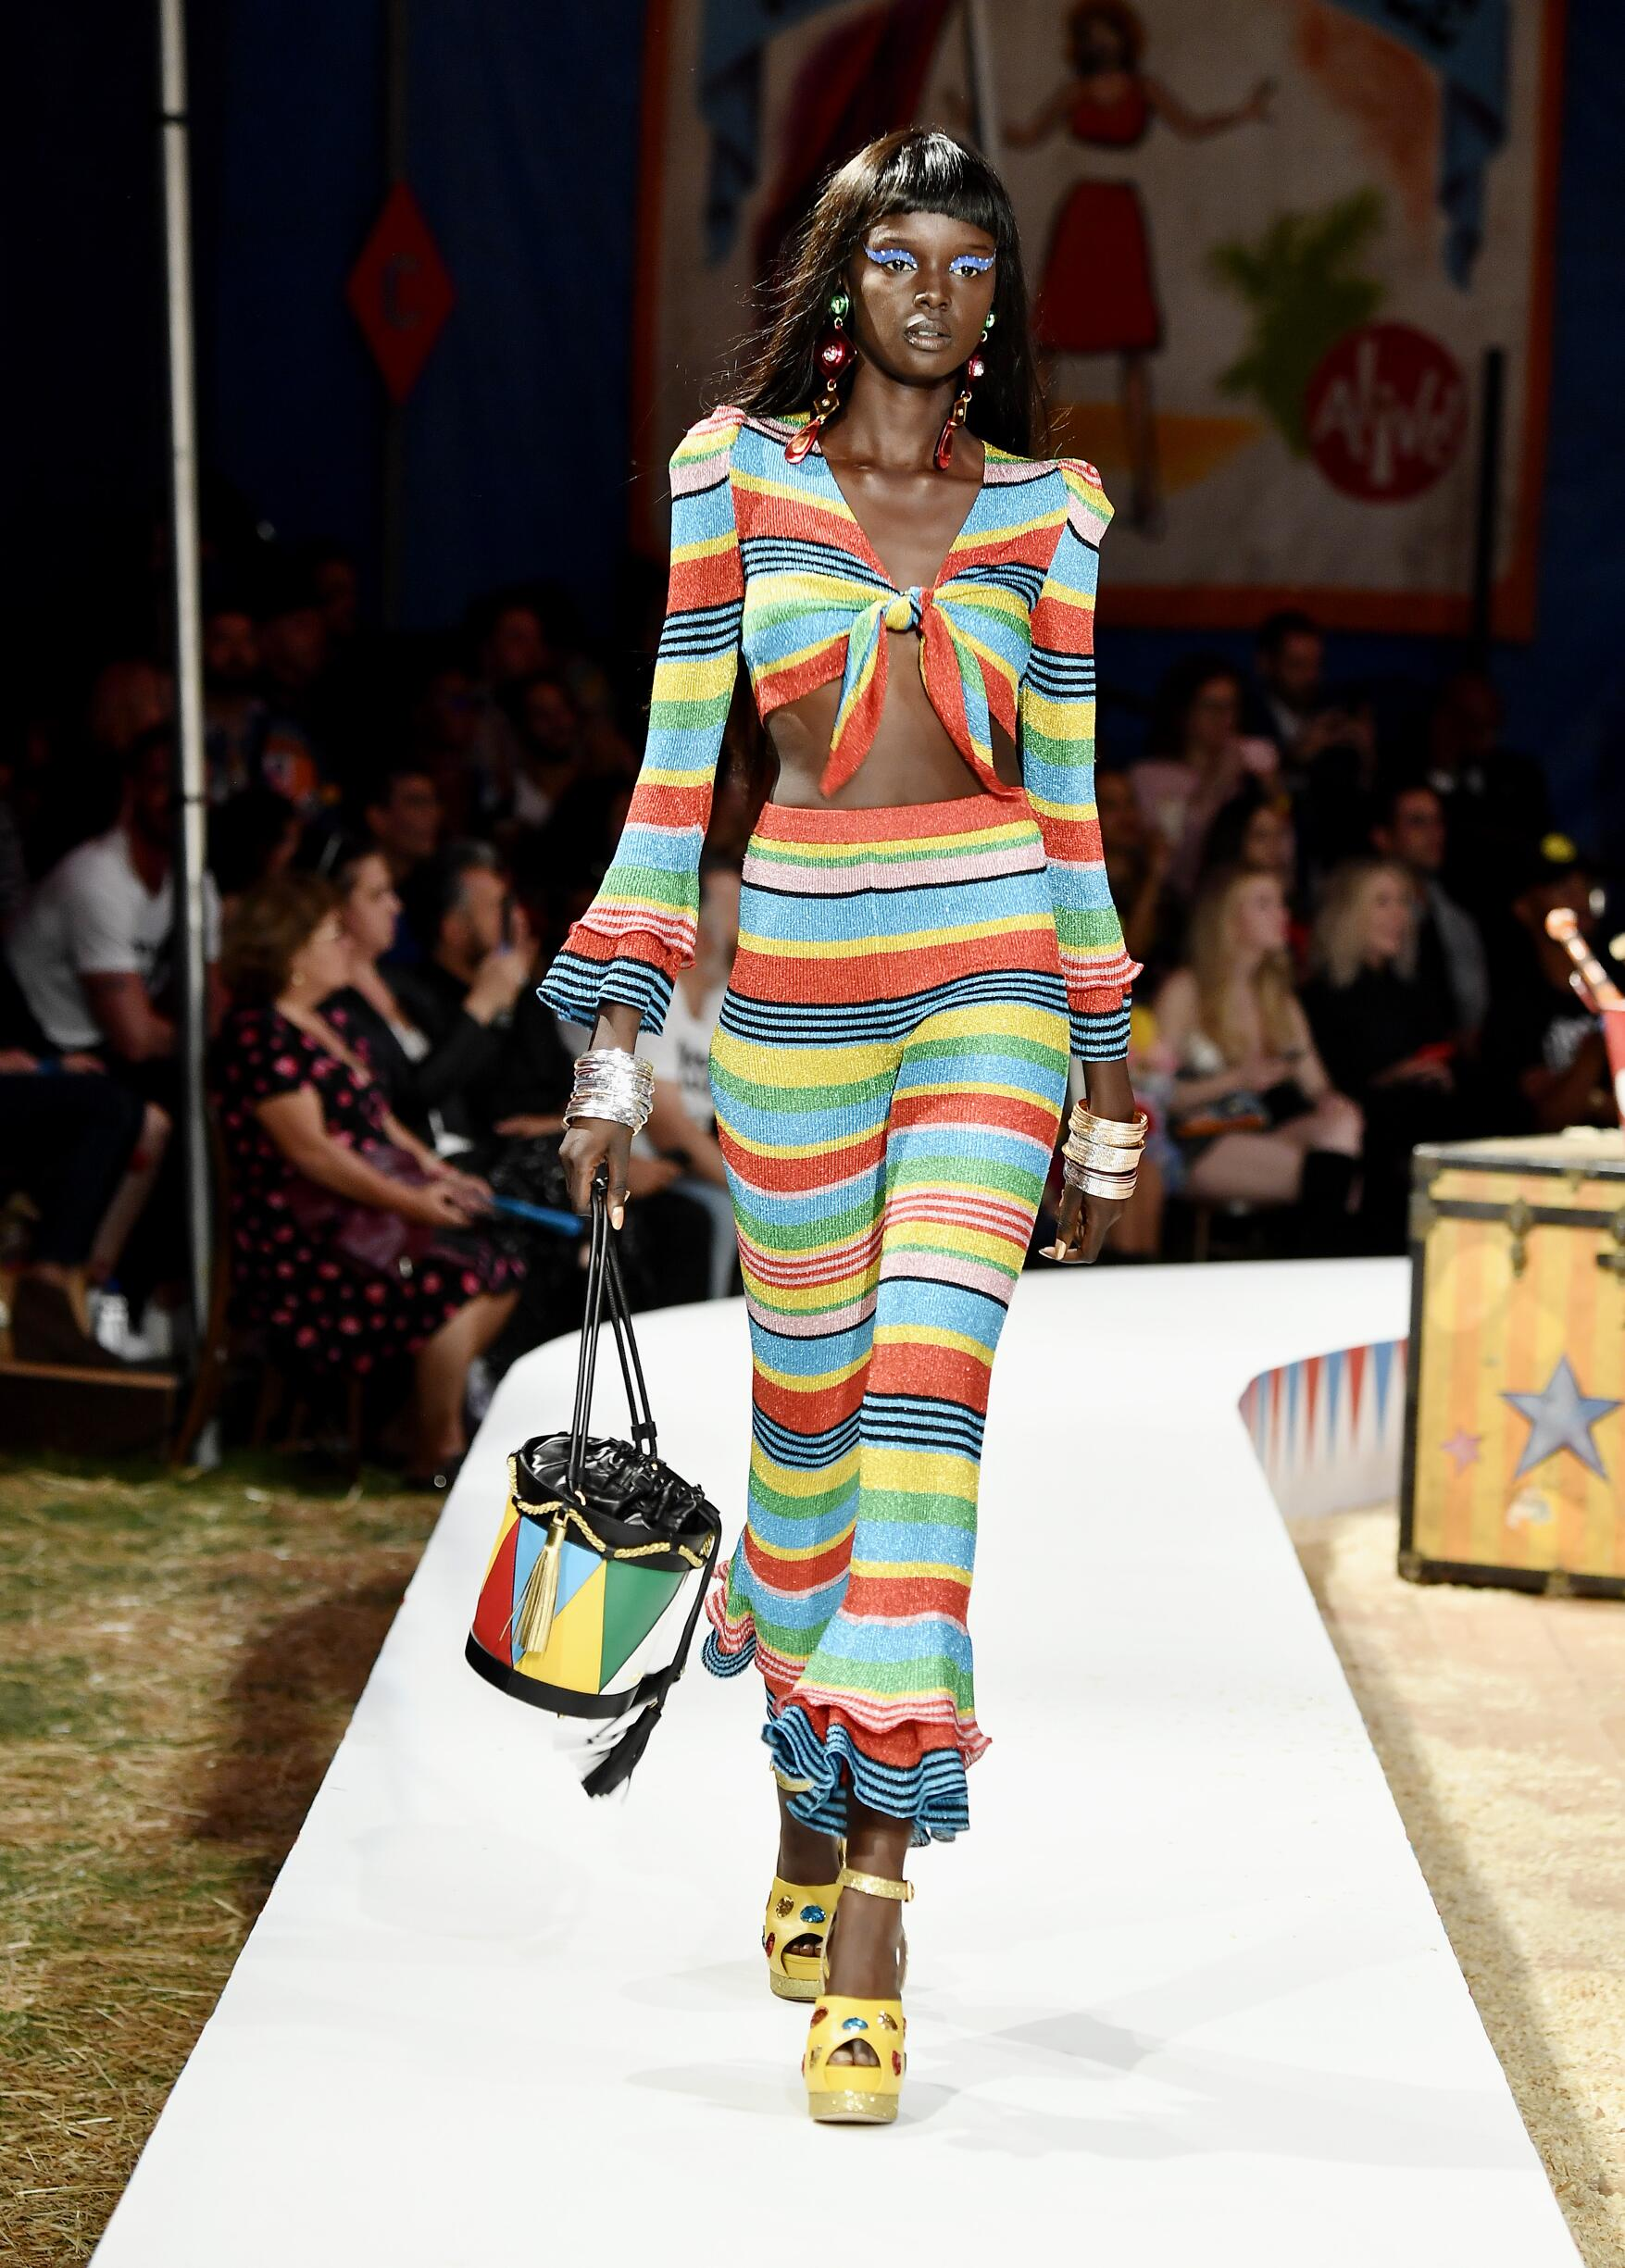 Moschino Spring Summer 2019 Menswear and Women's Resort Collection Look 6 Los Angeles